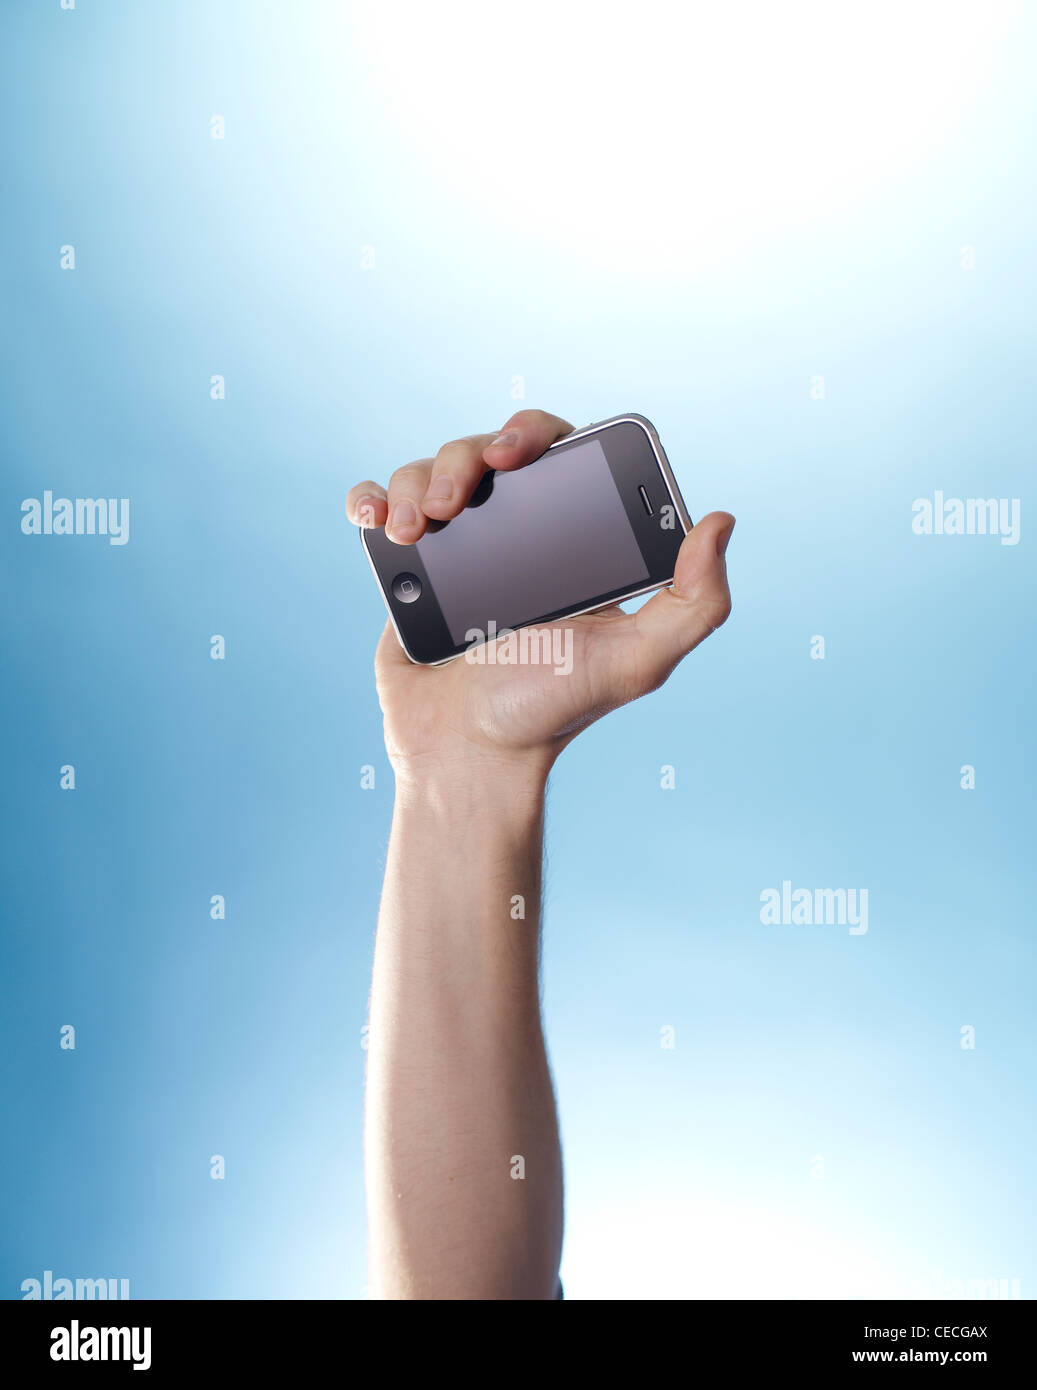 Hand holding an iPhone up against a sky blue background - Stock Image